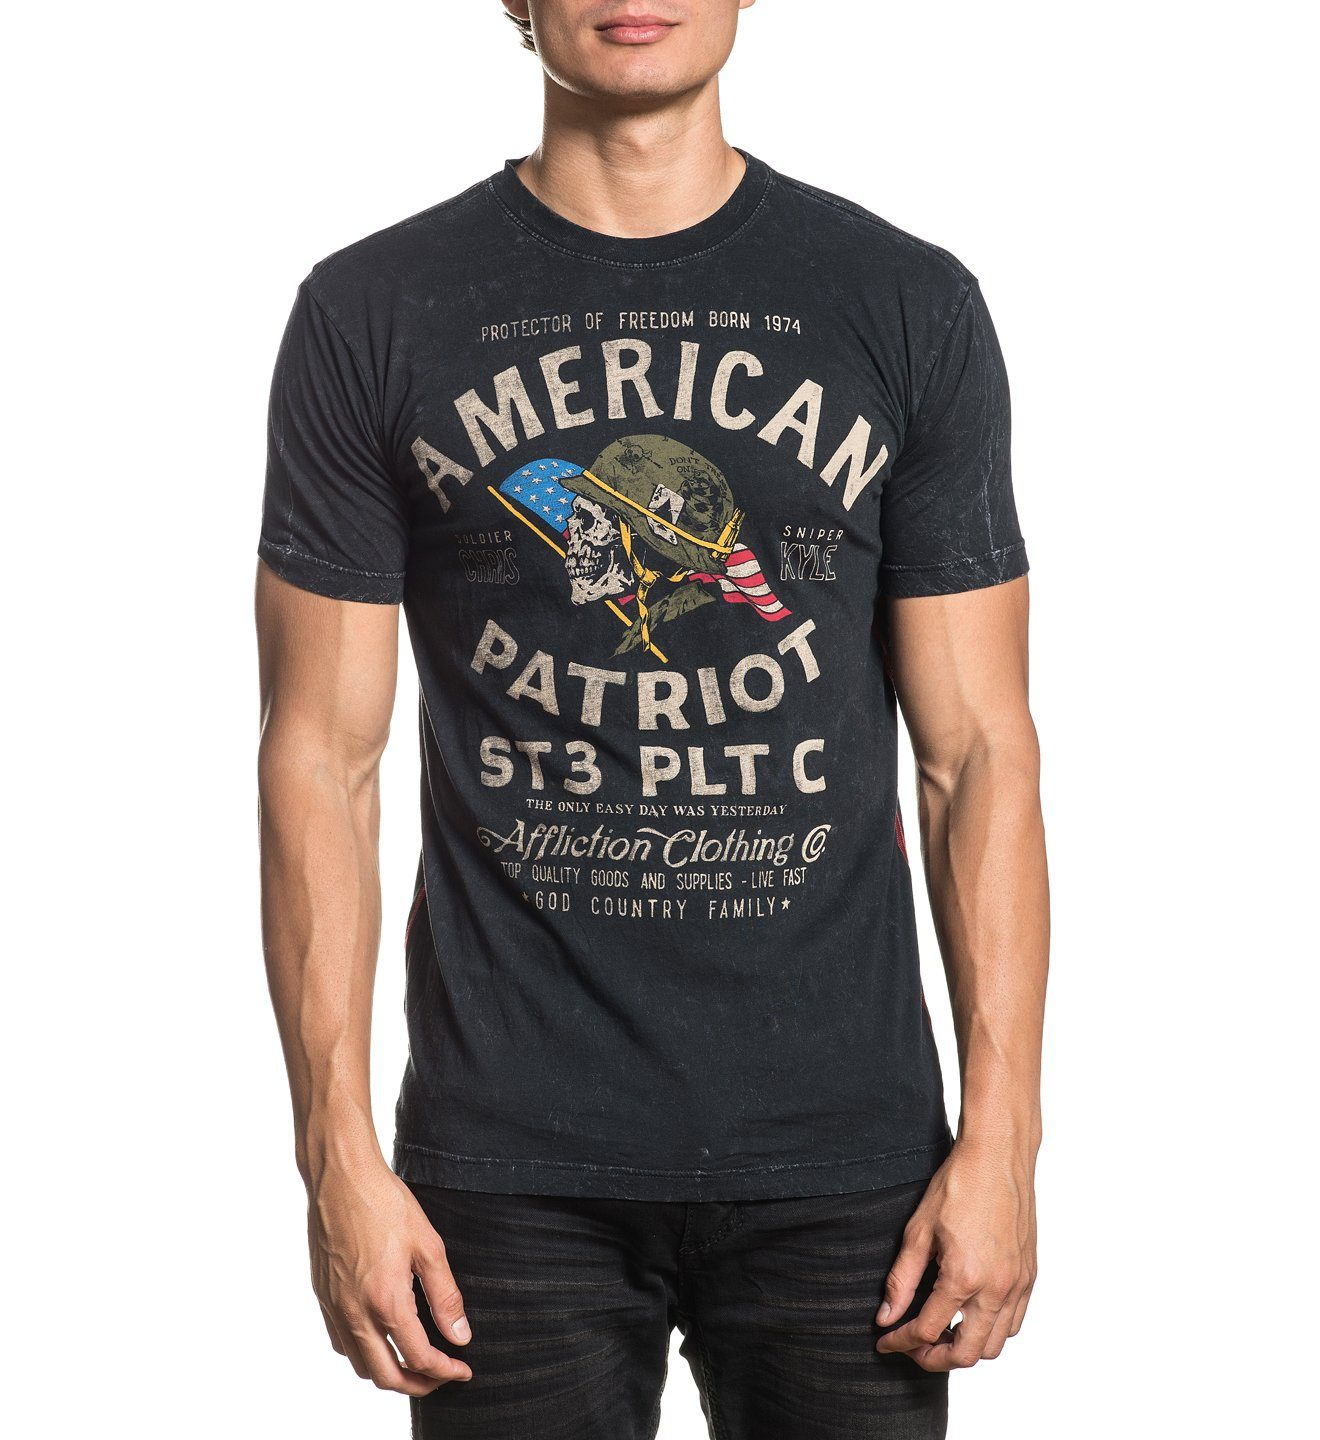 Ck Old Glory - Mens Short Sleeve Tees - Affliction Clothing